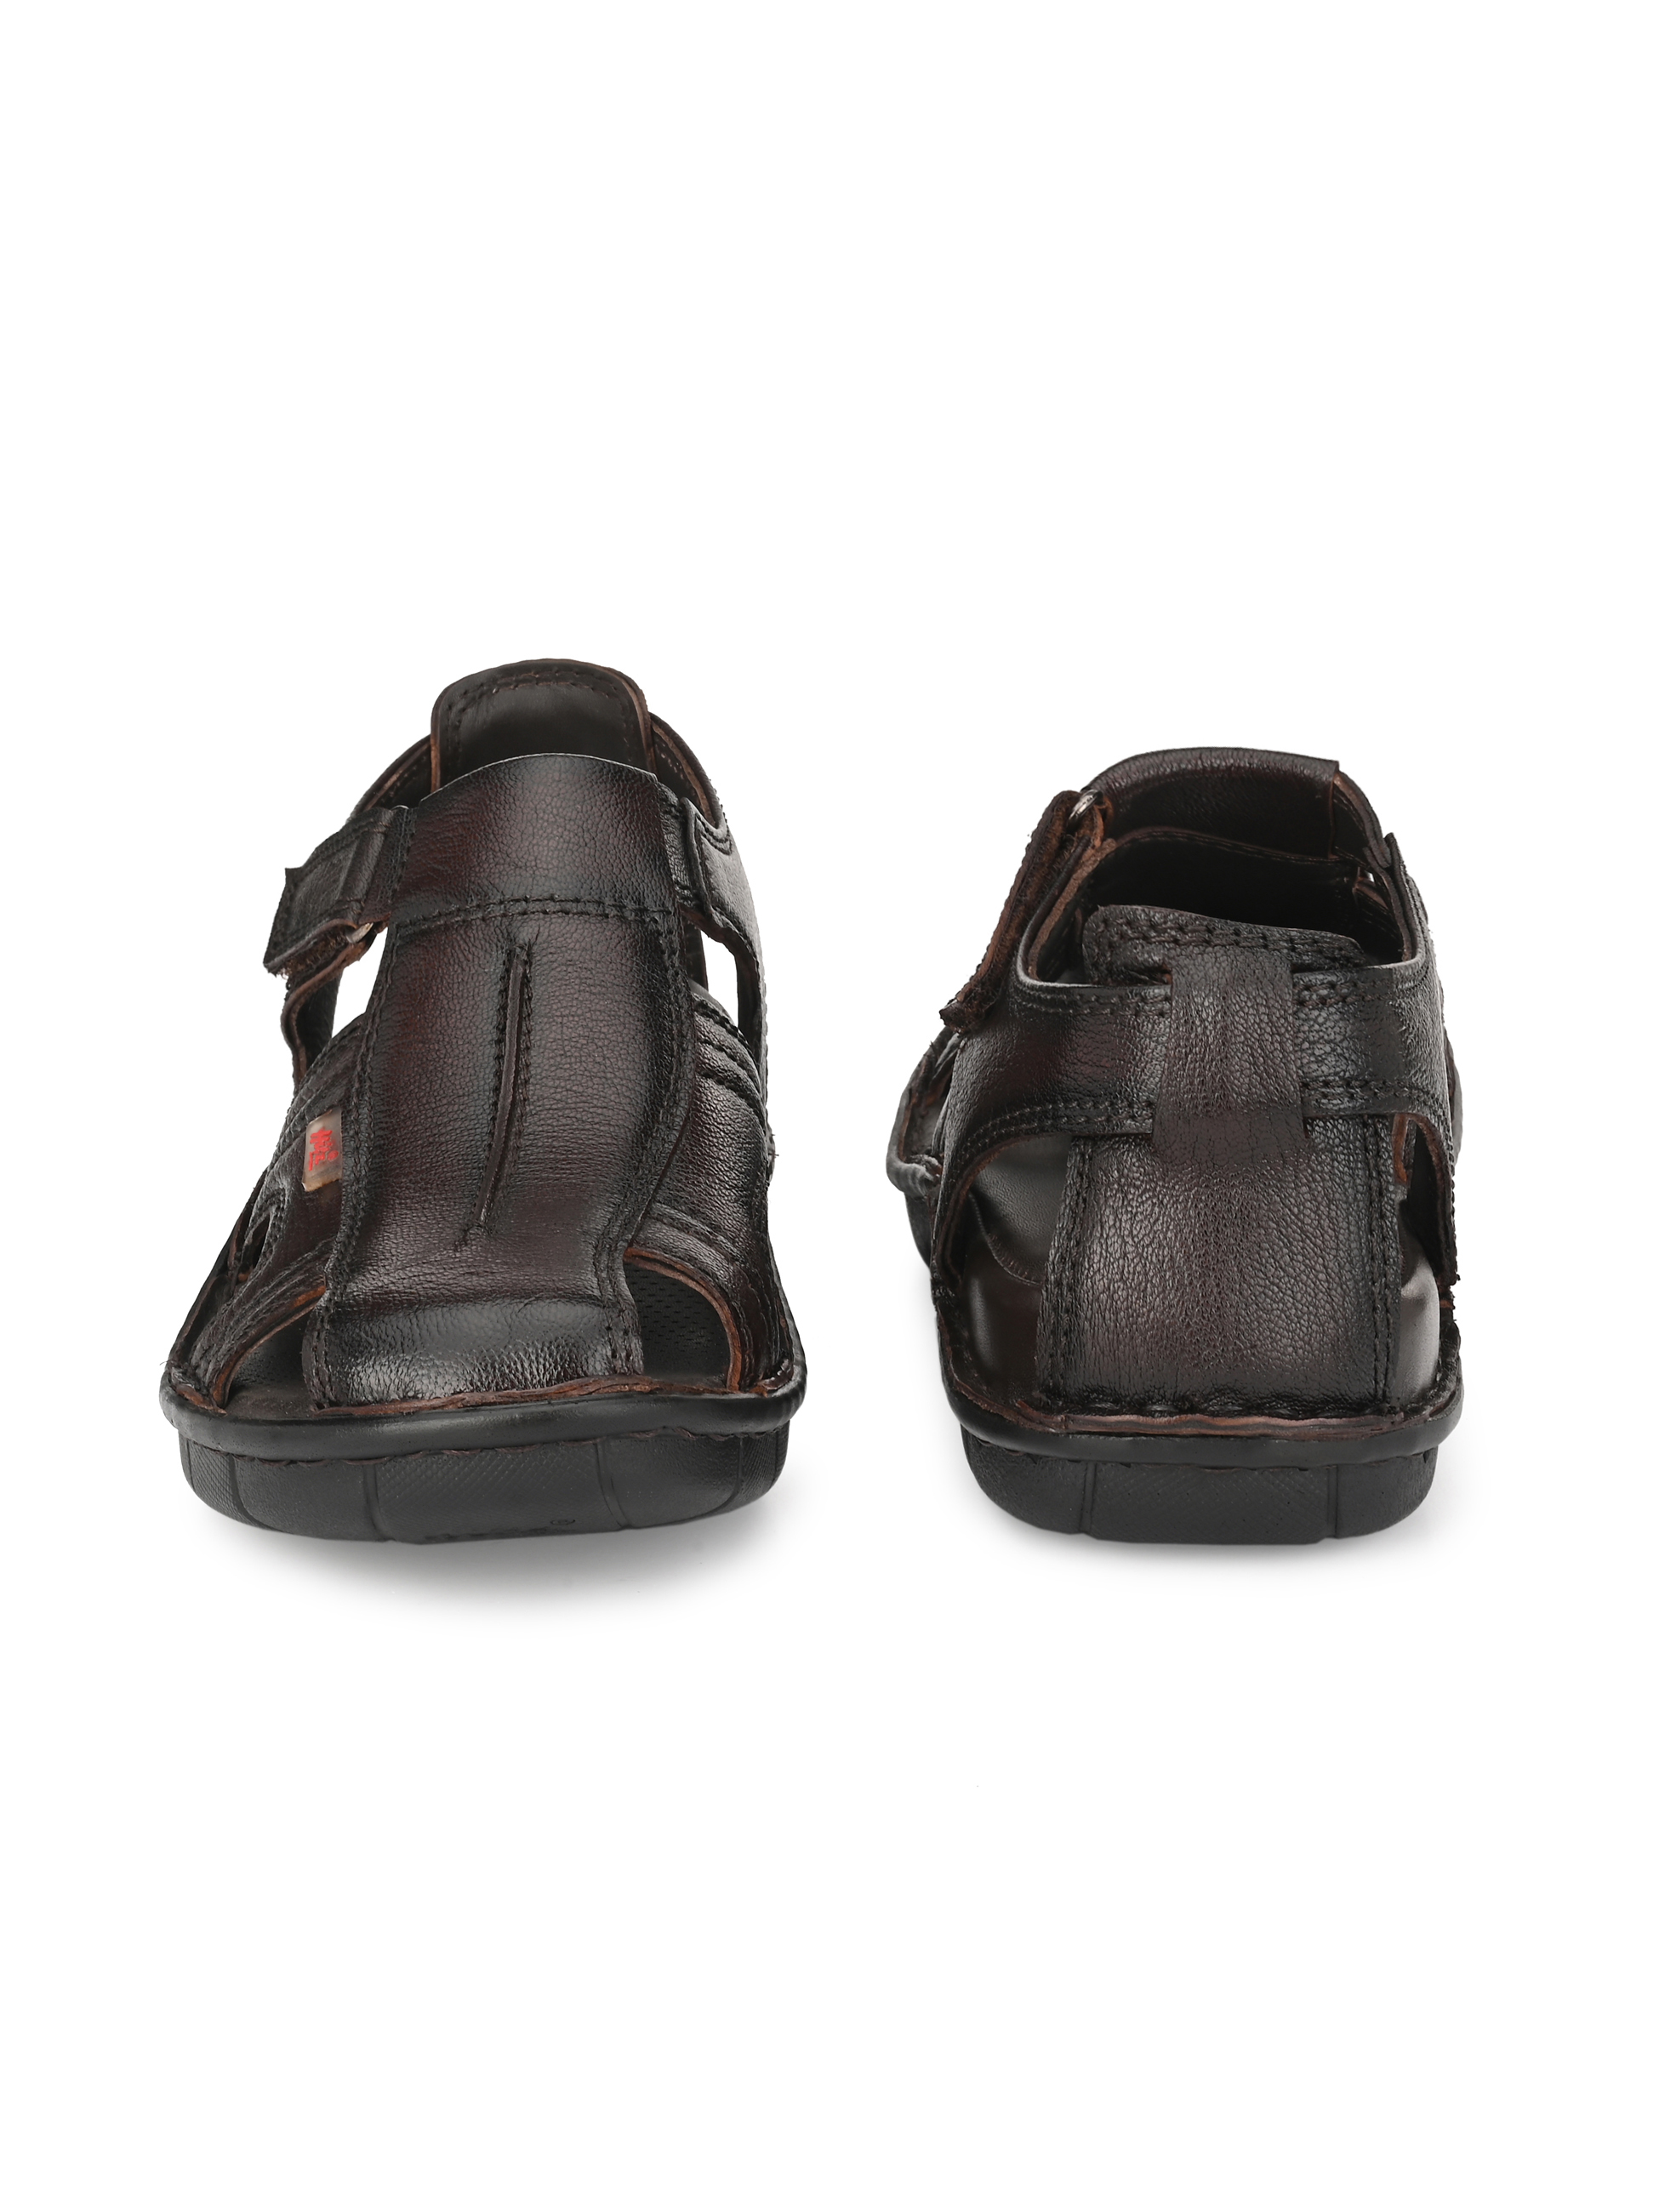 Hitz | Hitz Brown Totone_Leather Sandals For Men with Velcro Closure